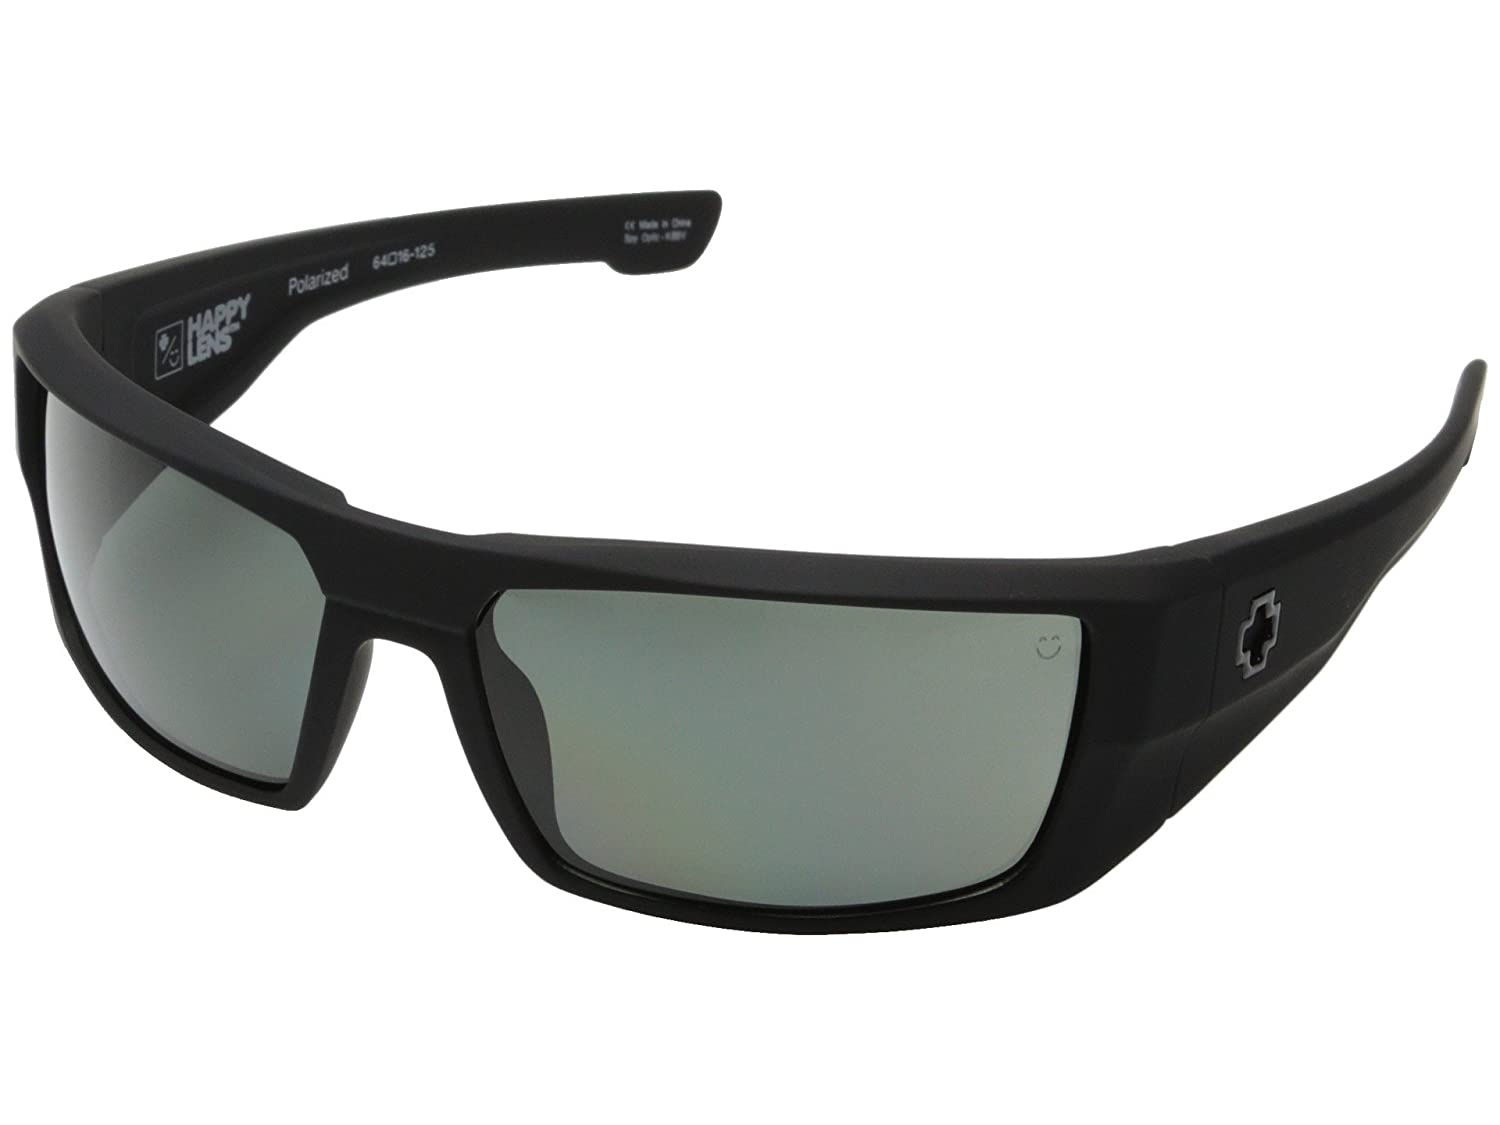 a01577f7d7 Amazon.com  Spy Dirk Sunglasses Soft Matte Black with Happy Grey Green  Polarized Lens  Shoes